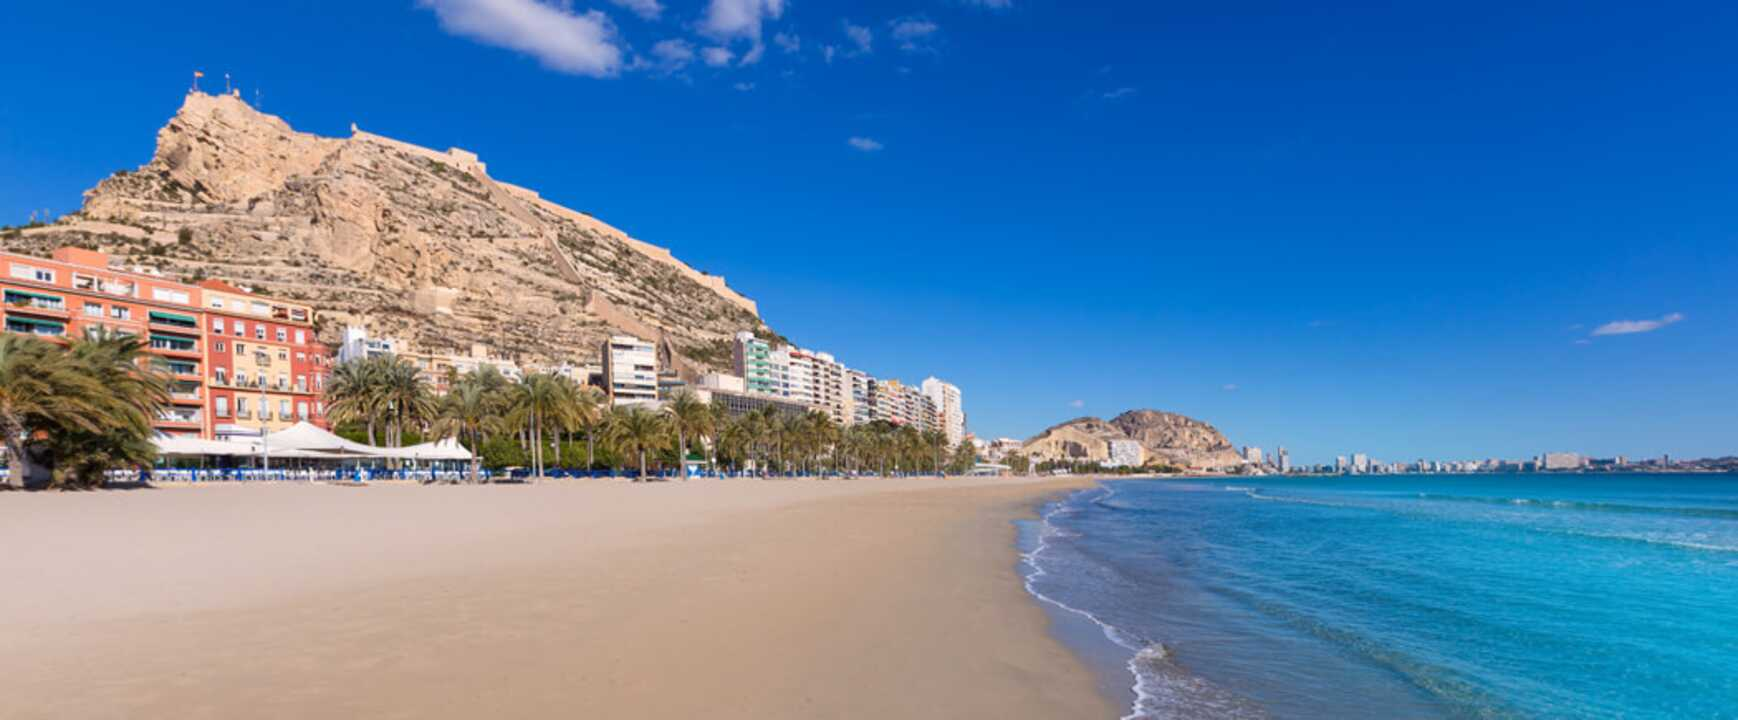 Cheap Holidays To Alicante On The Beach